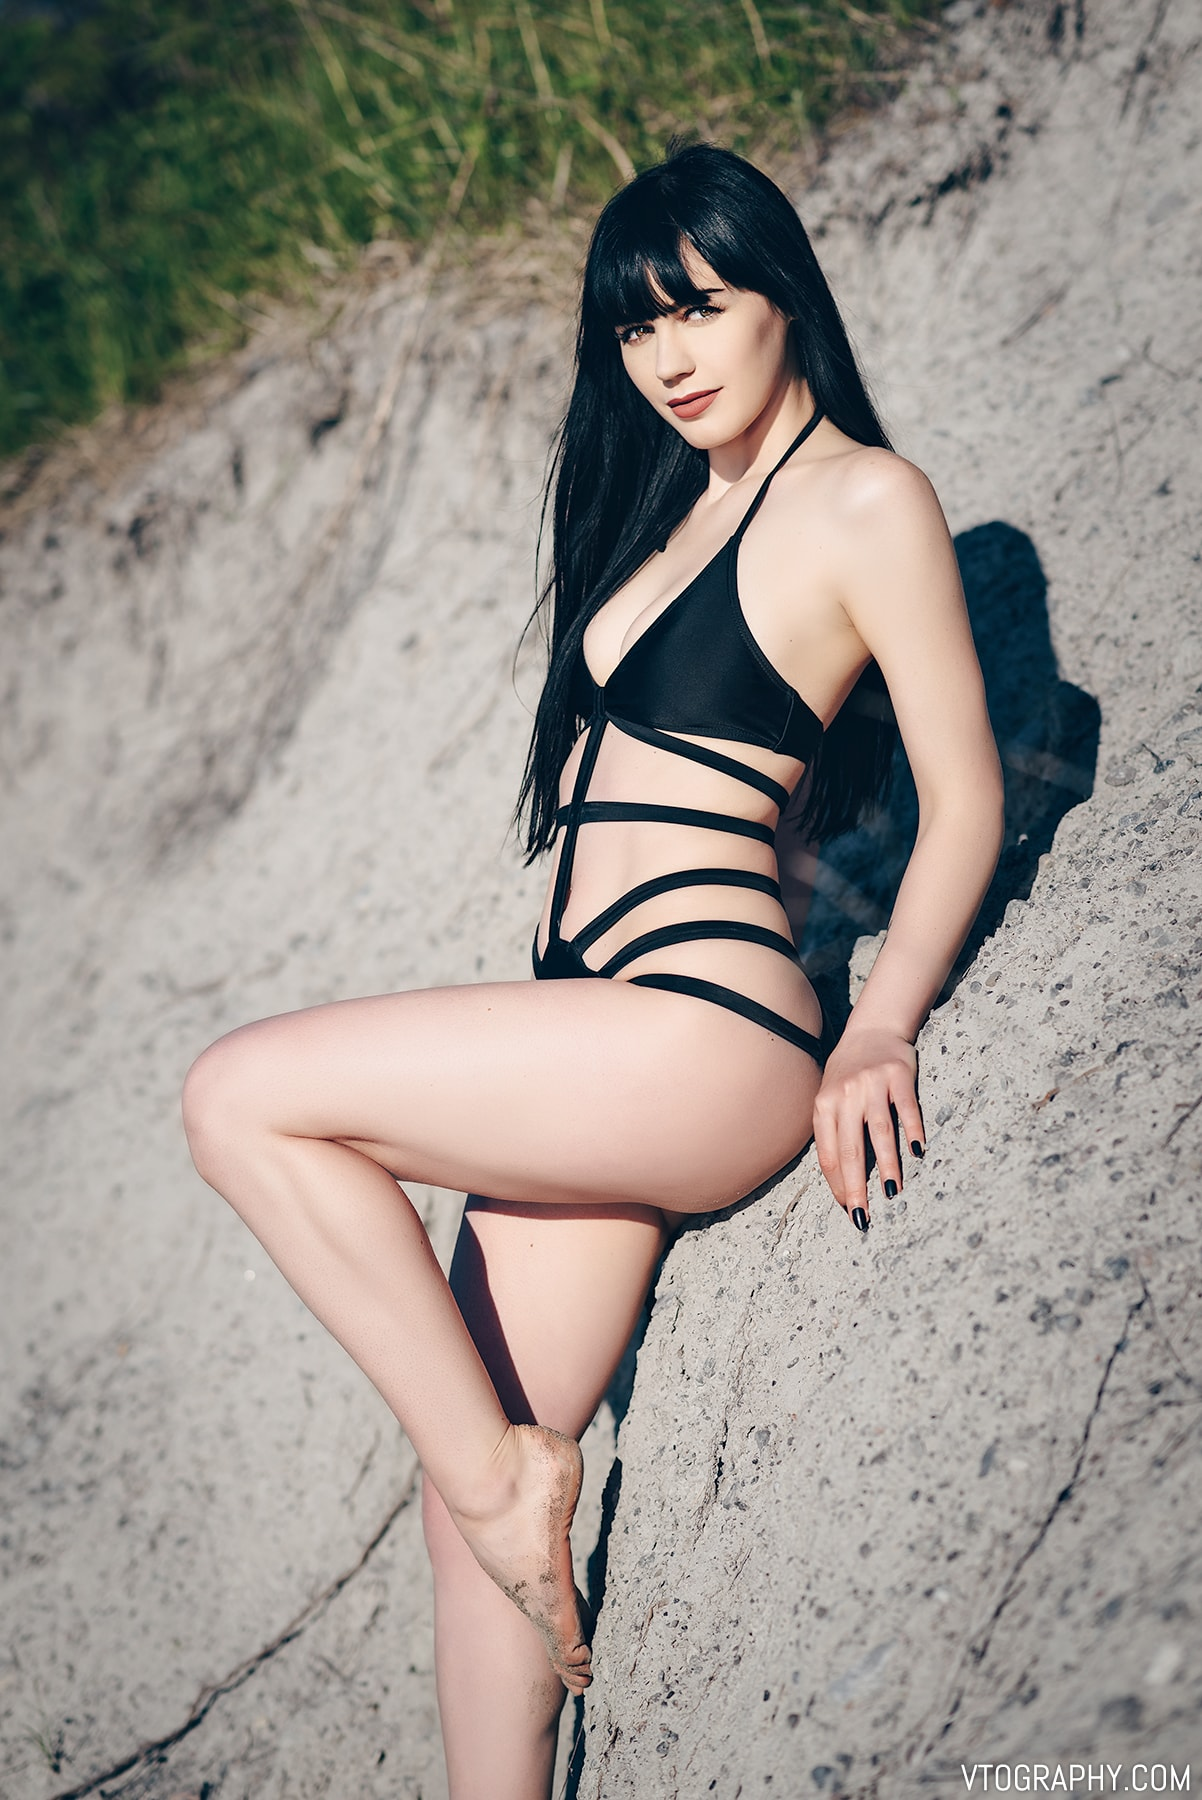 Ashley models a strappy black one-piece swimsuit from Zaful